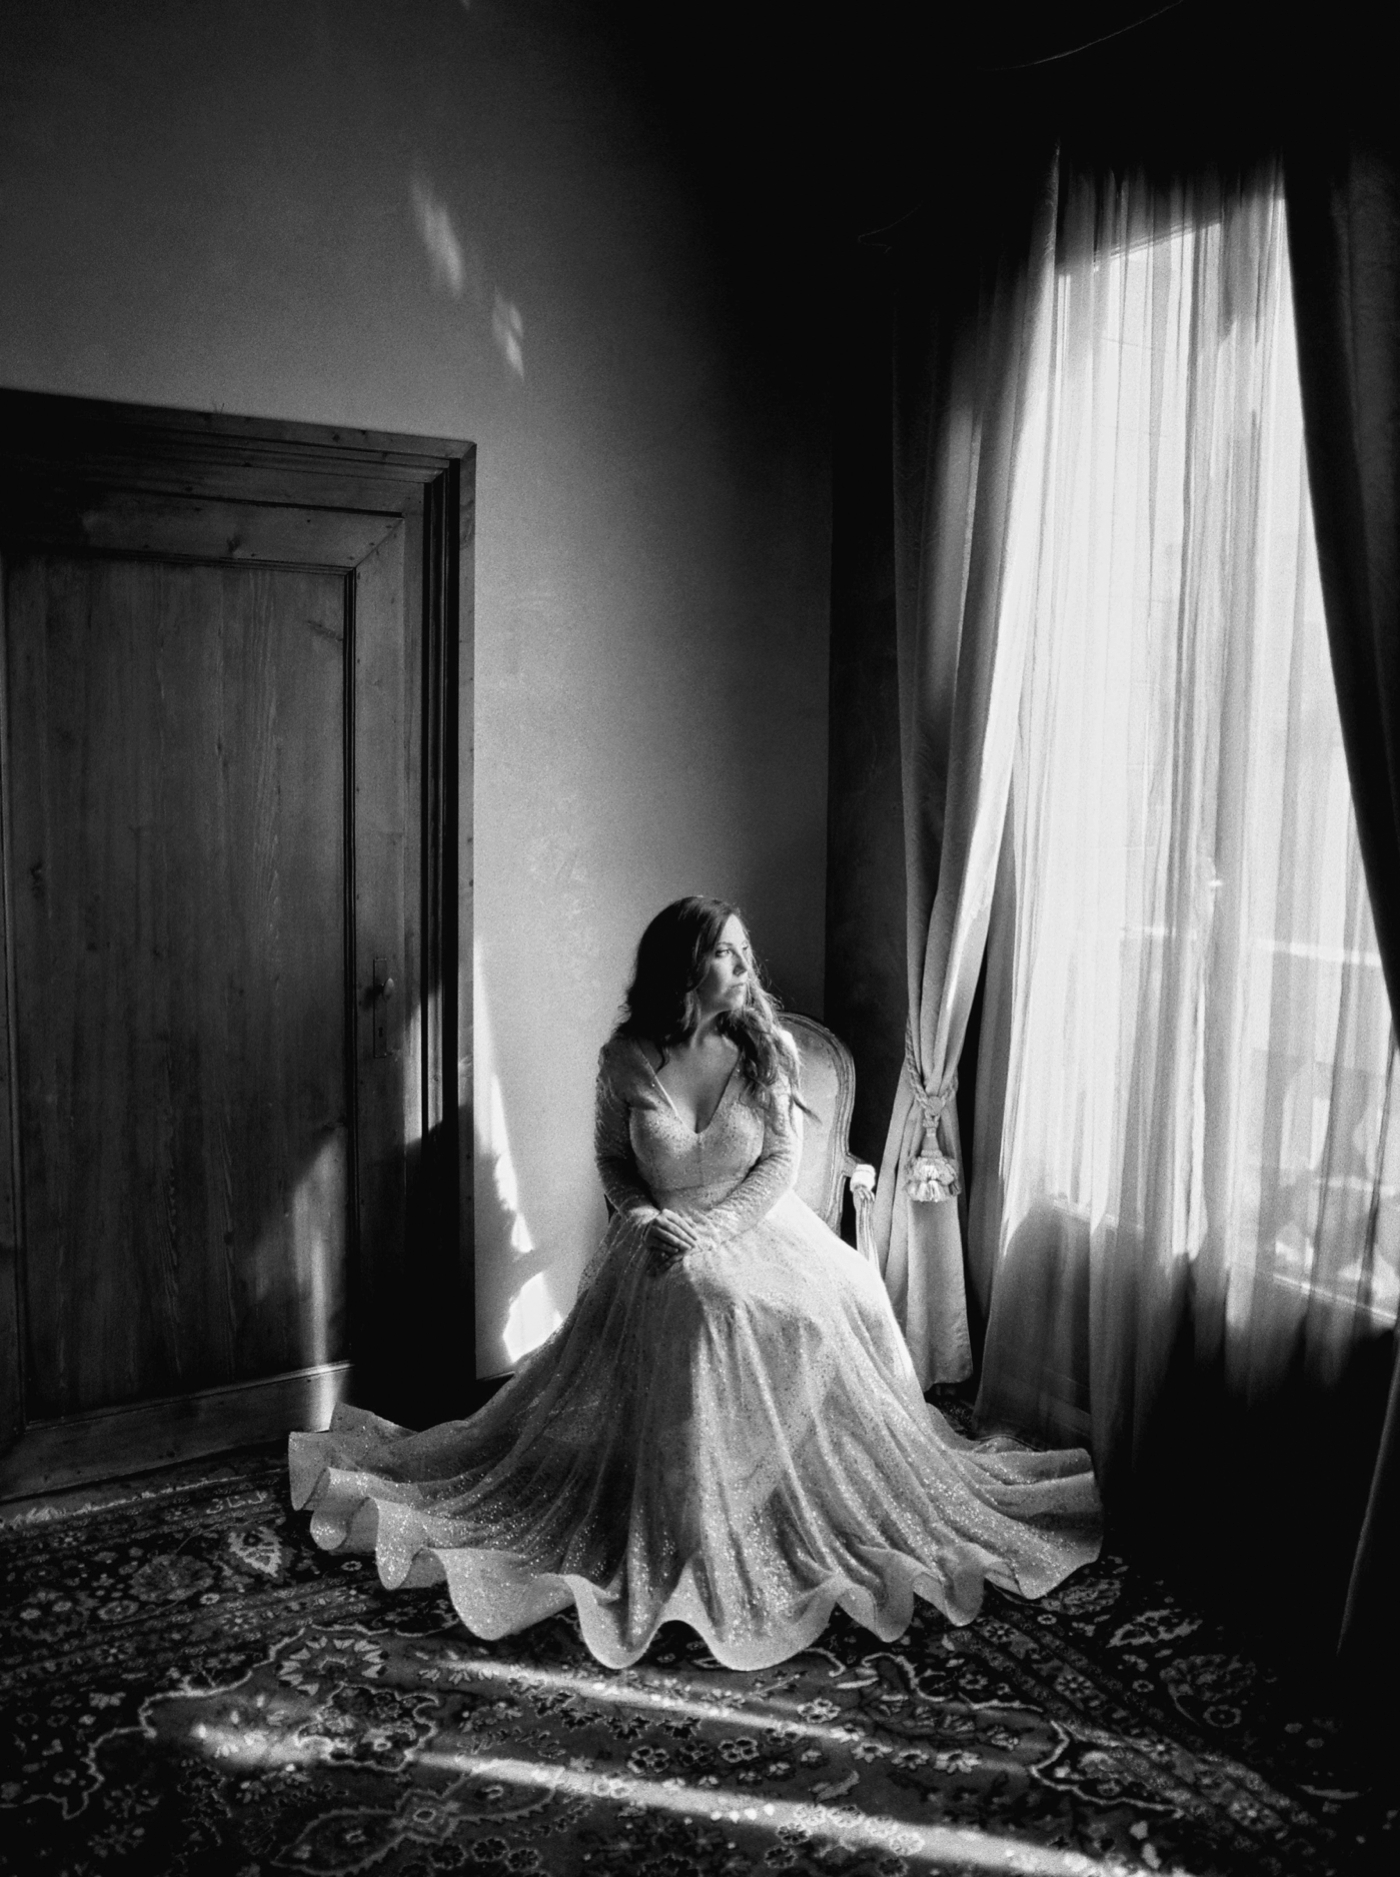 Venice italy wedding photographers | long sleeve wedding dress | italy vow renewal | justine milton fine art film photographer | getting ready portraits black and white film